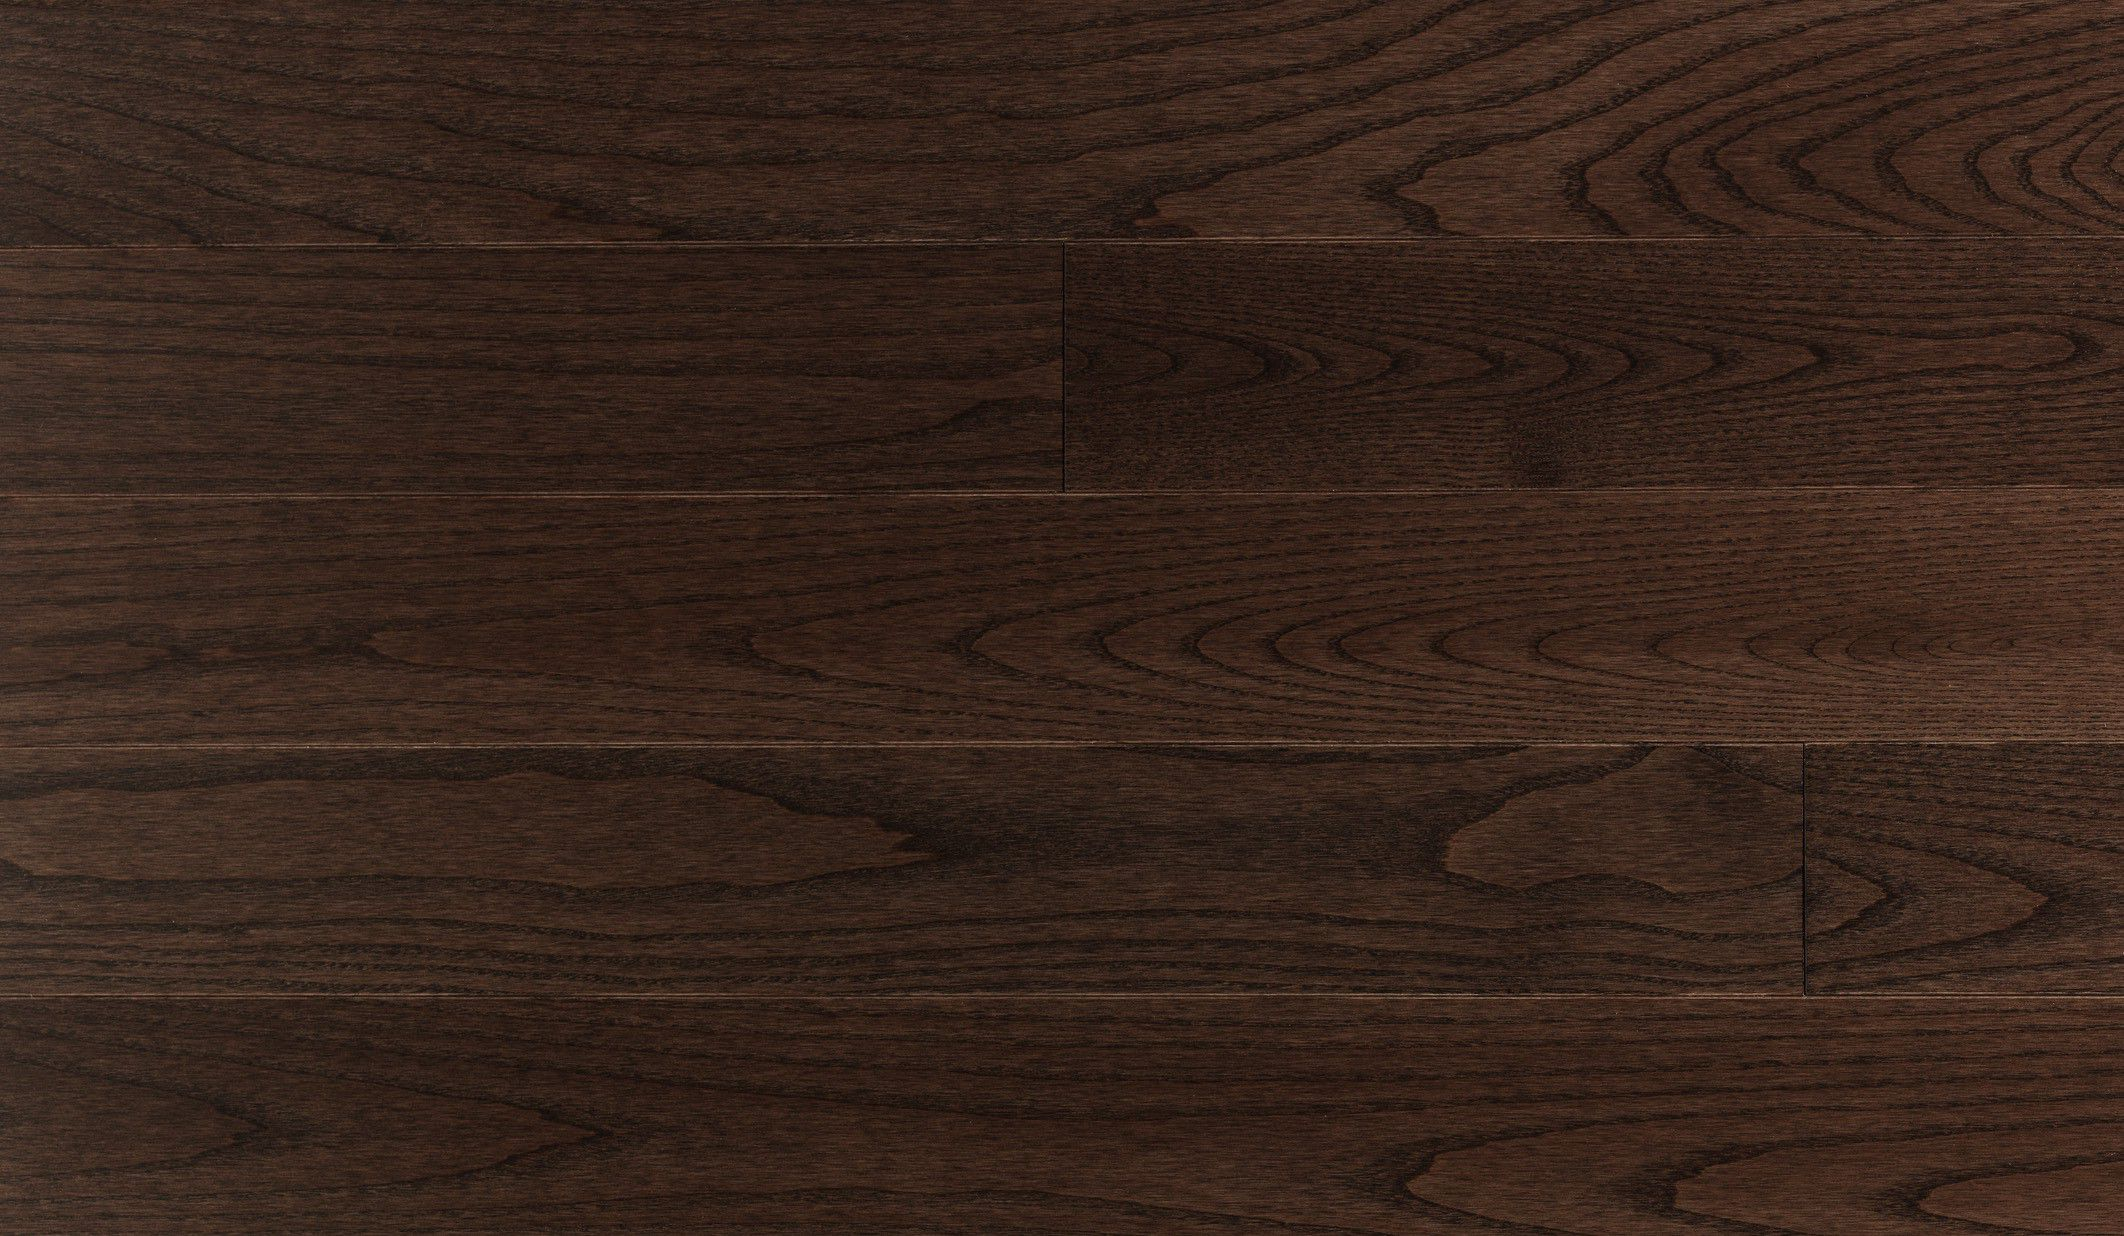 dark wood seamless texture - Google Search | Textures ...